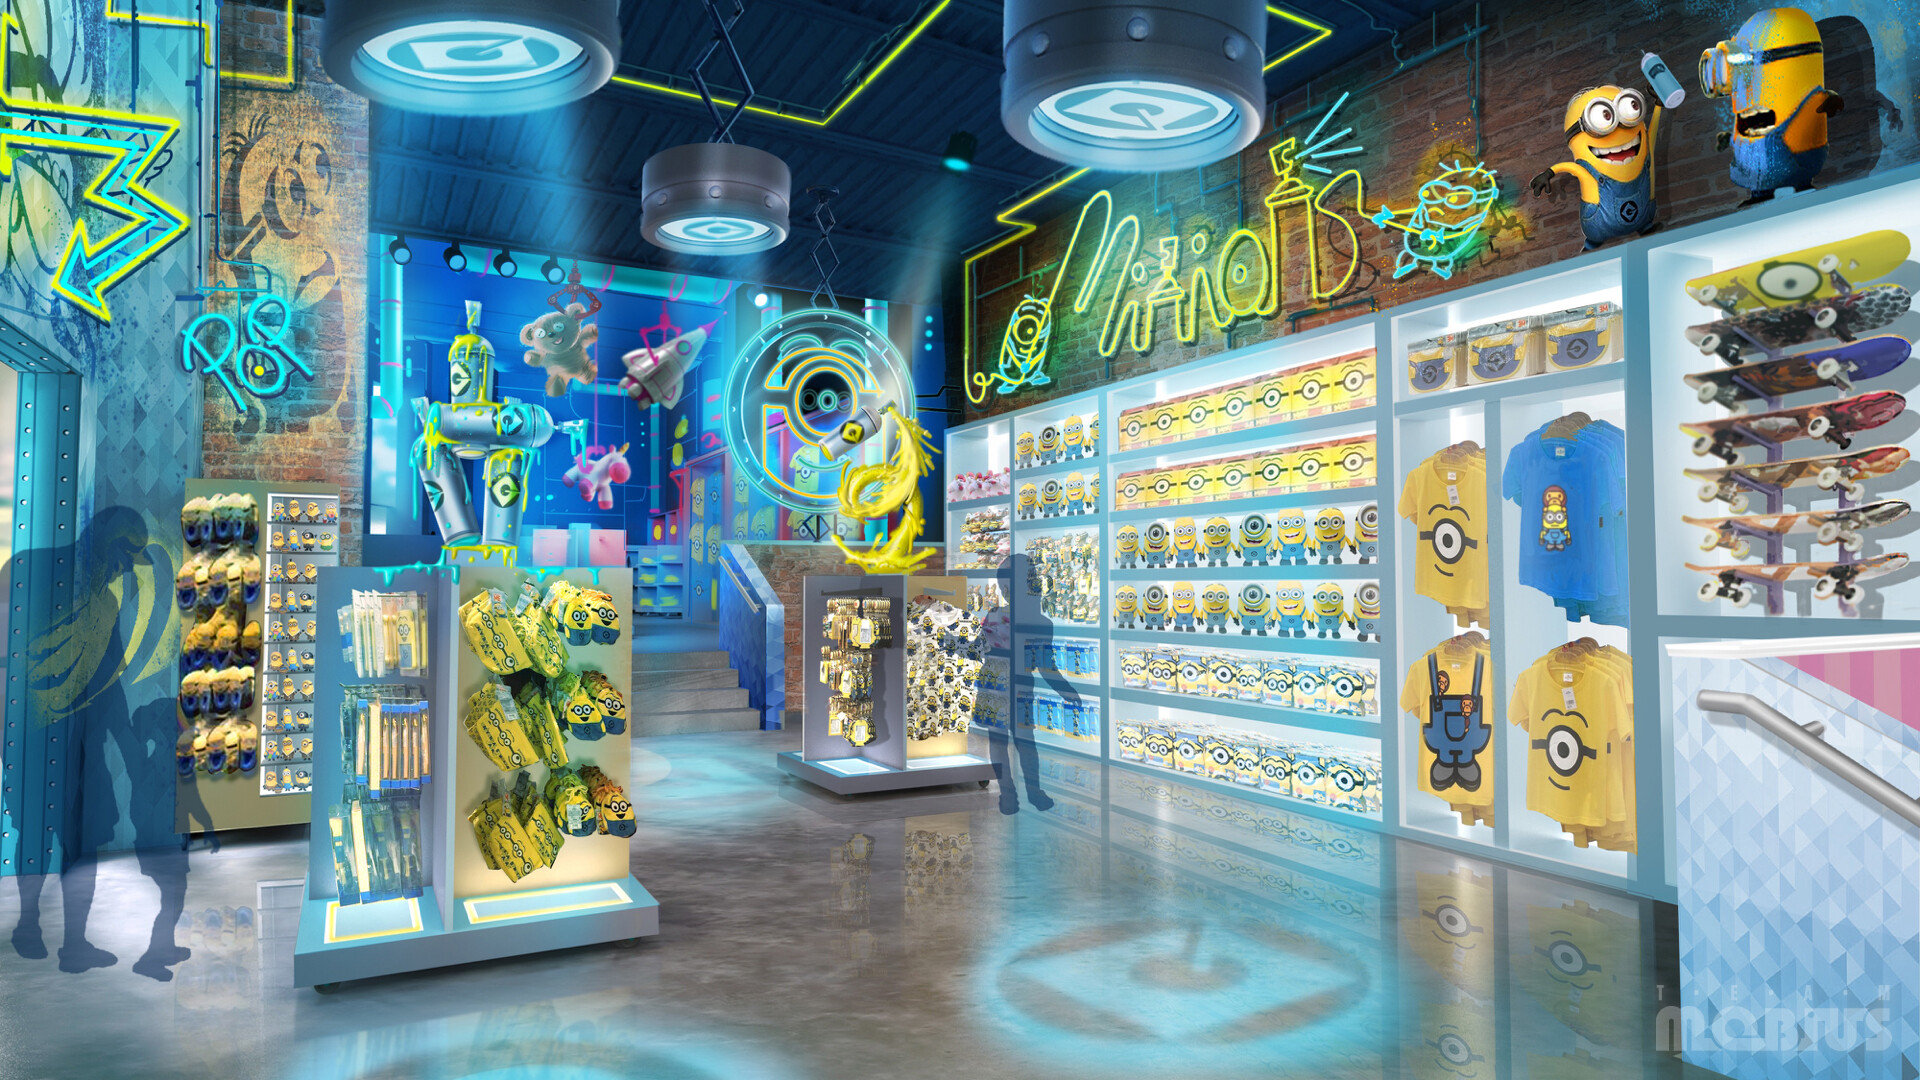 Concept artwork for the interior of the POP retail store